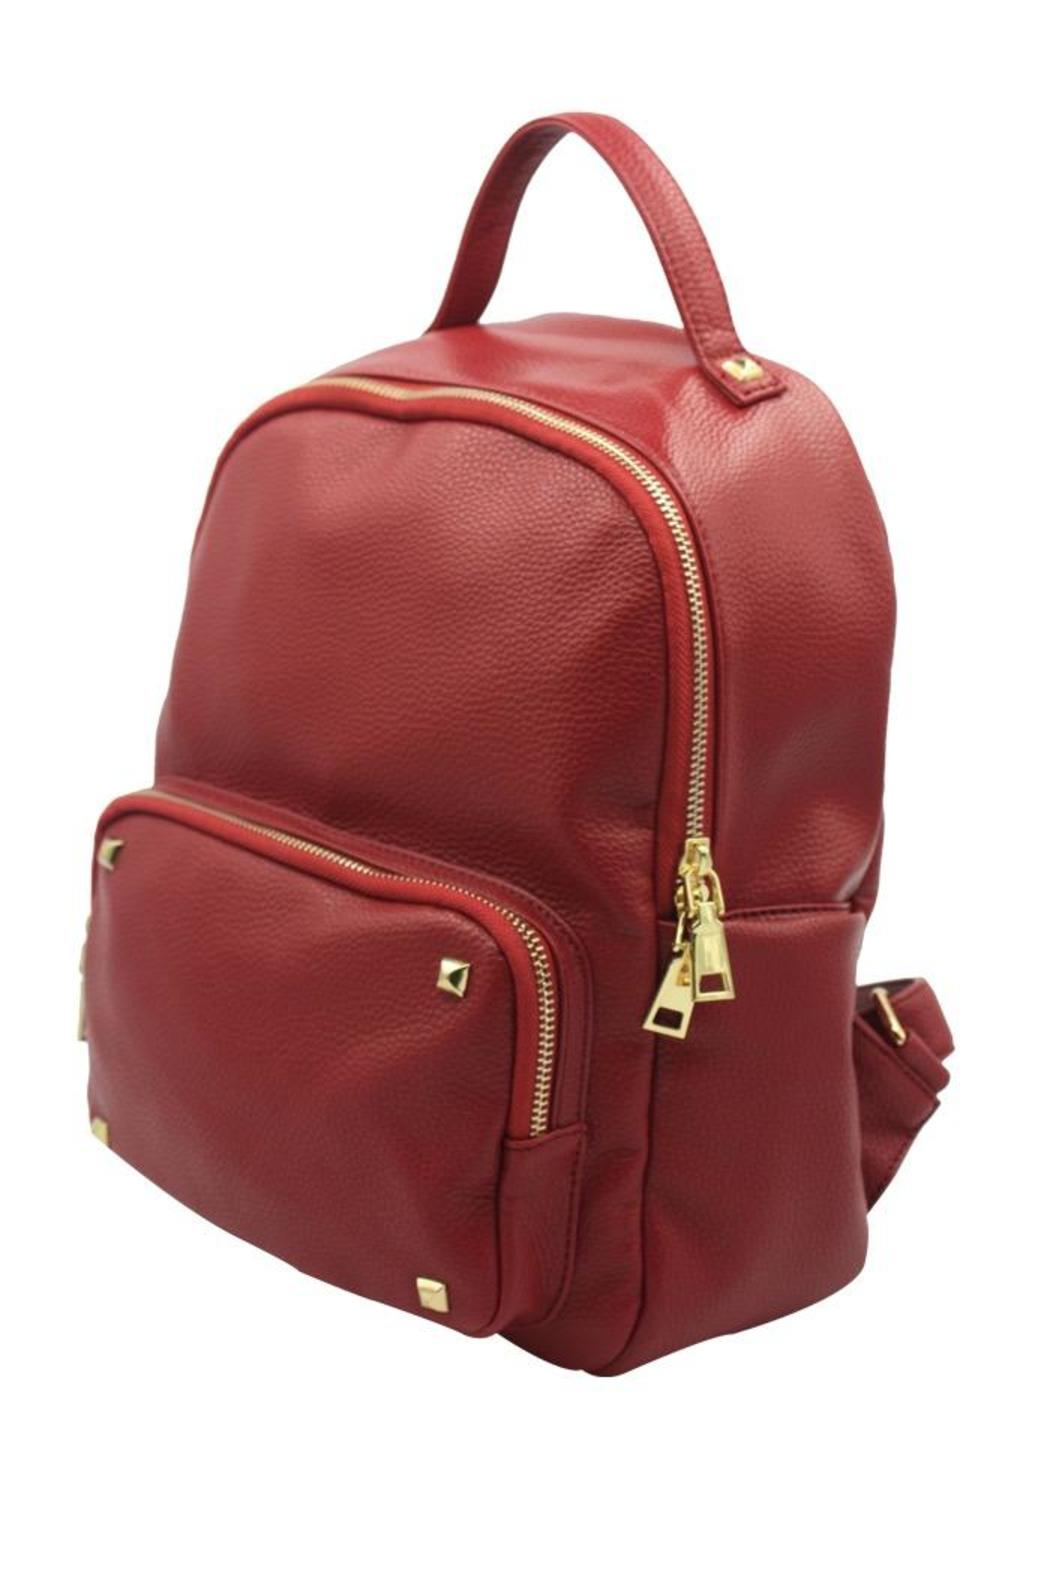 FaFa-Montreal Amily Vegan Leather Backpack from Montreal by FaFa ...